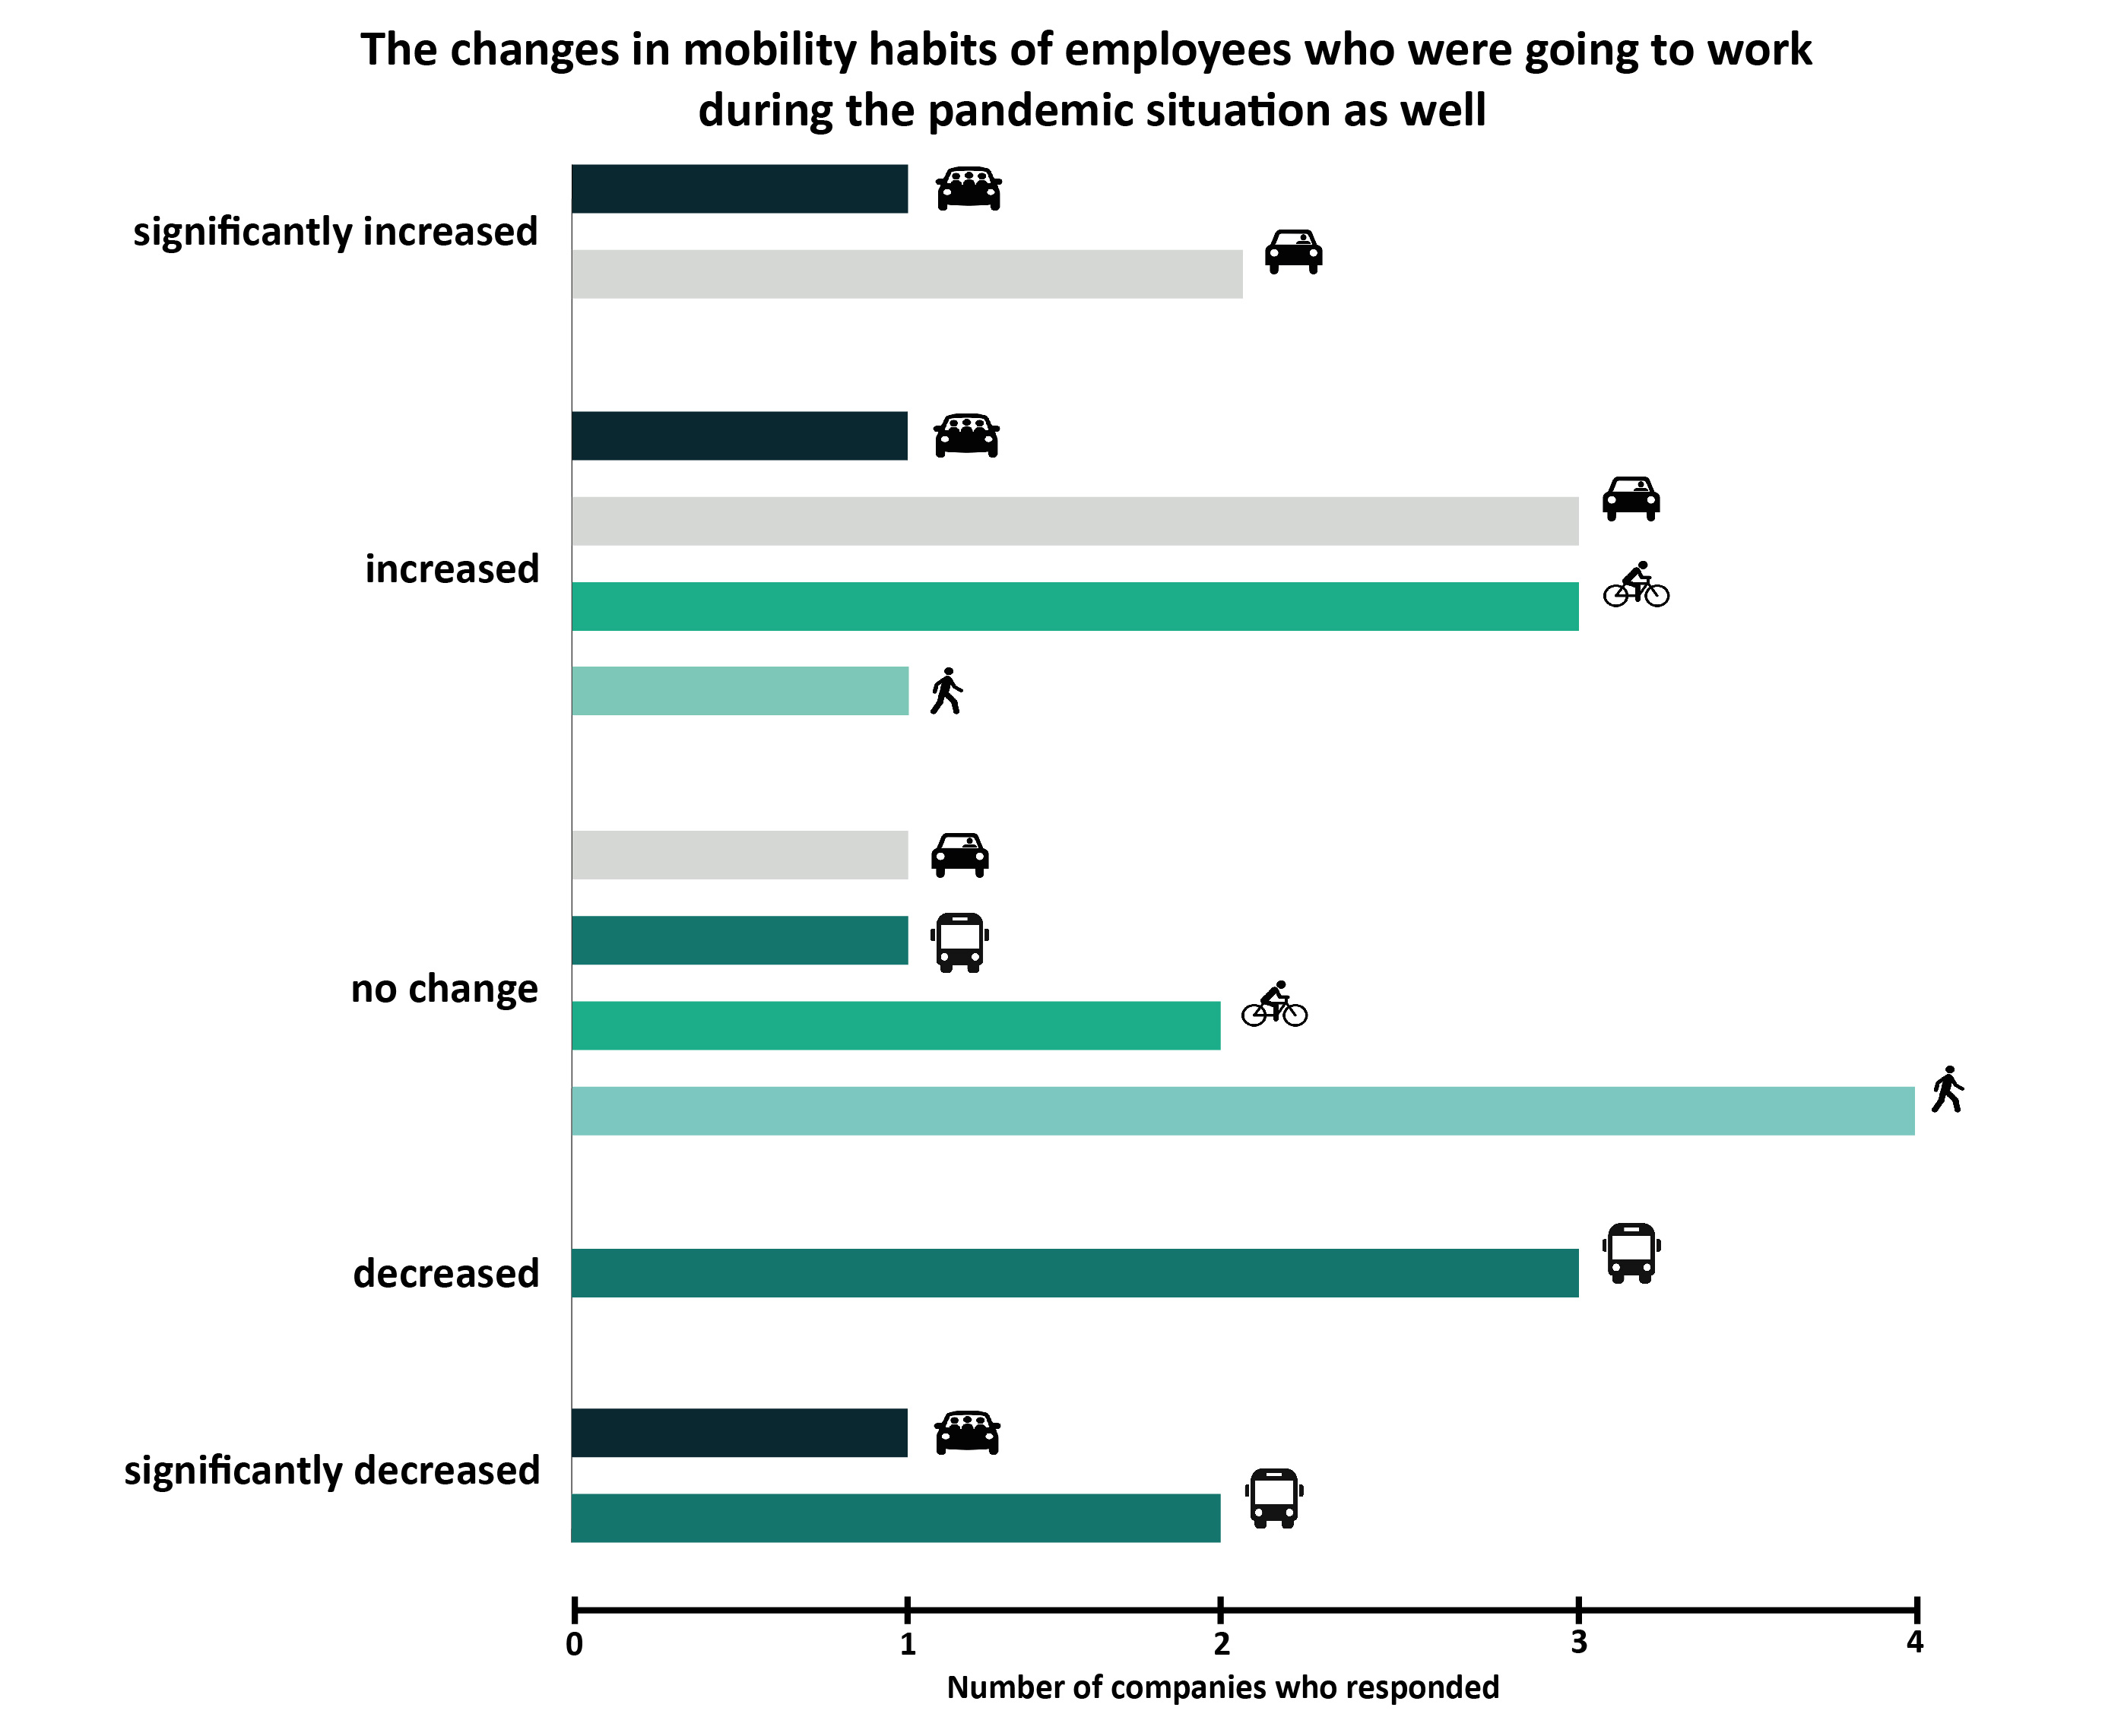 Figure: The changes in mobility habits of employees who were going to work during the pandemic situation as well